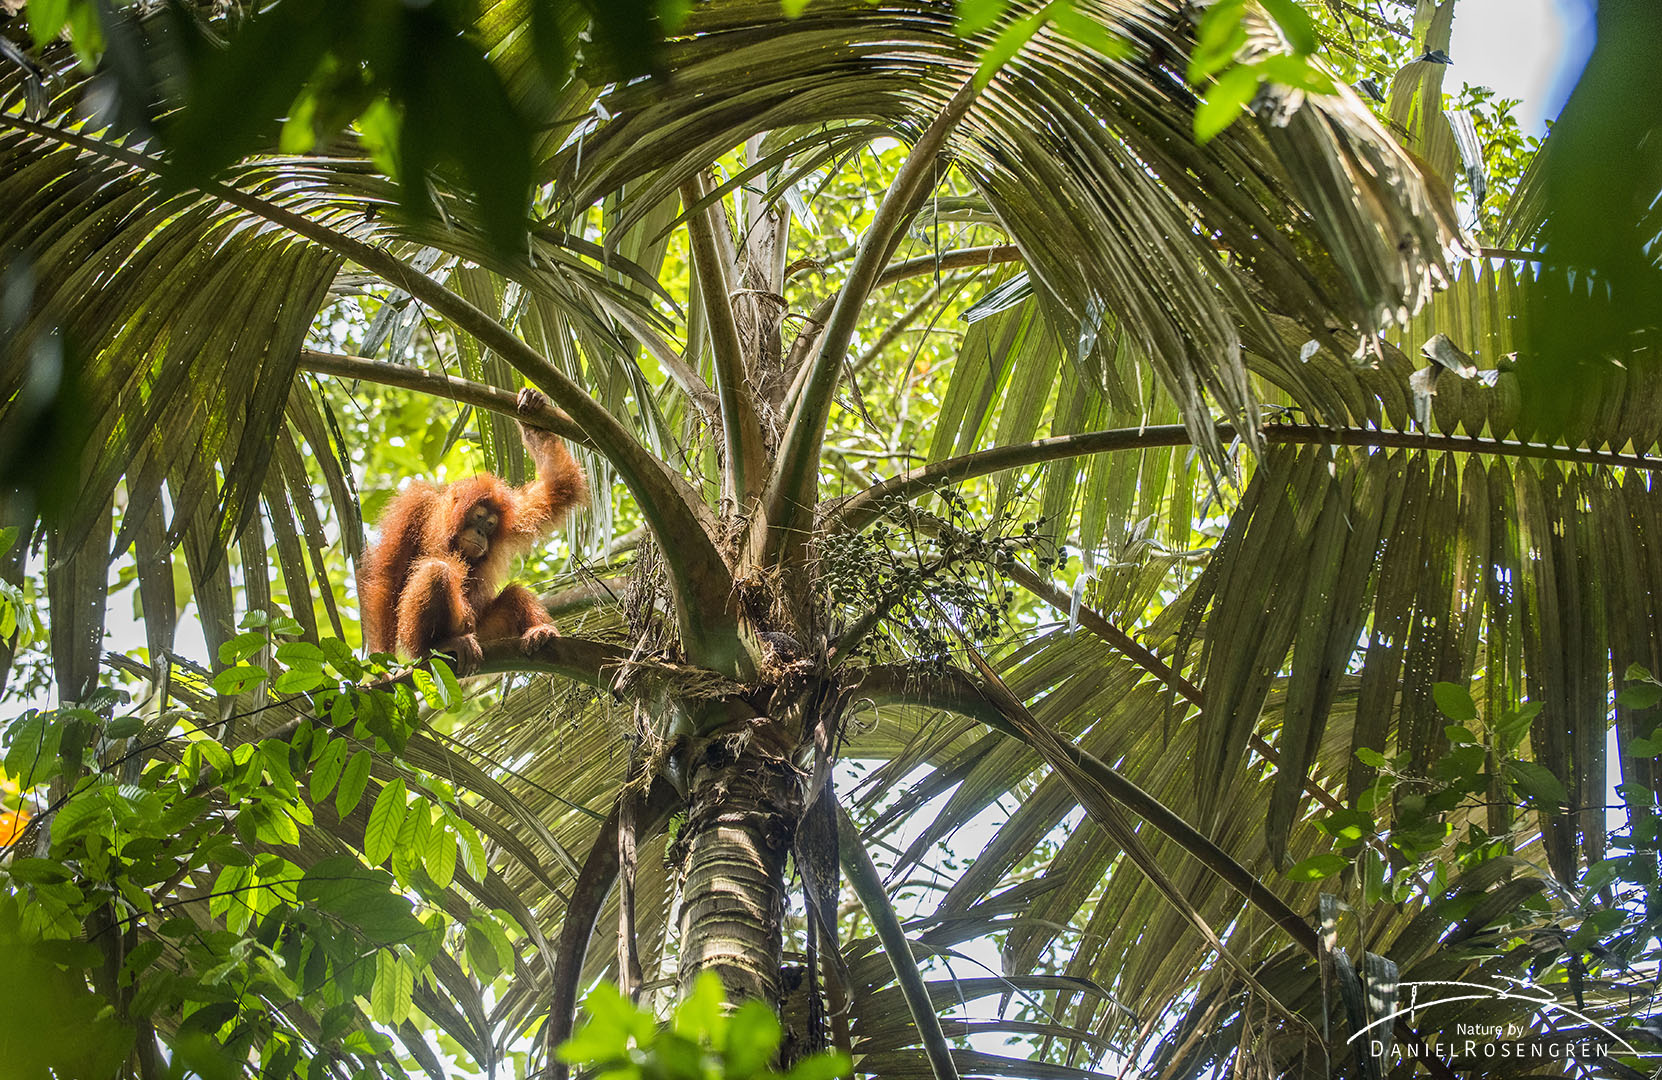 An Orang-utan in a palm tree on Sumatra. © Daniel Rosengren